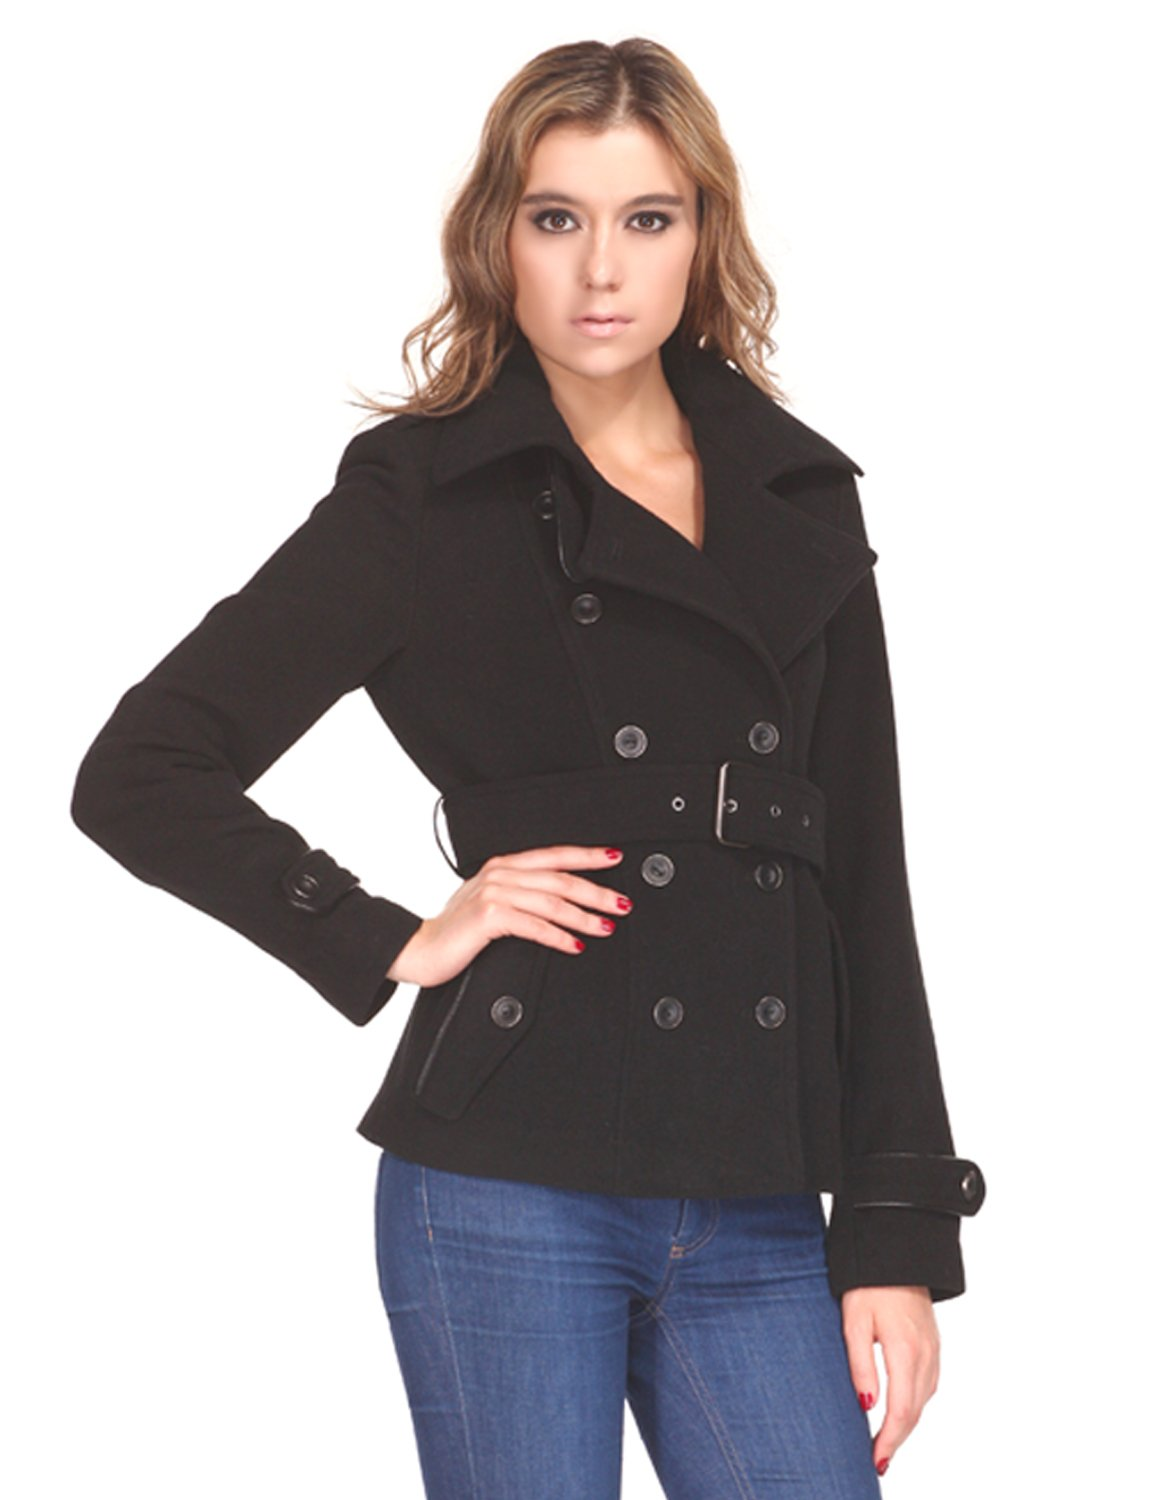 ZAREEN Women's Short Wool Blend Coat With Trench Style (Medium, Black) by ZAREEN